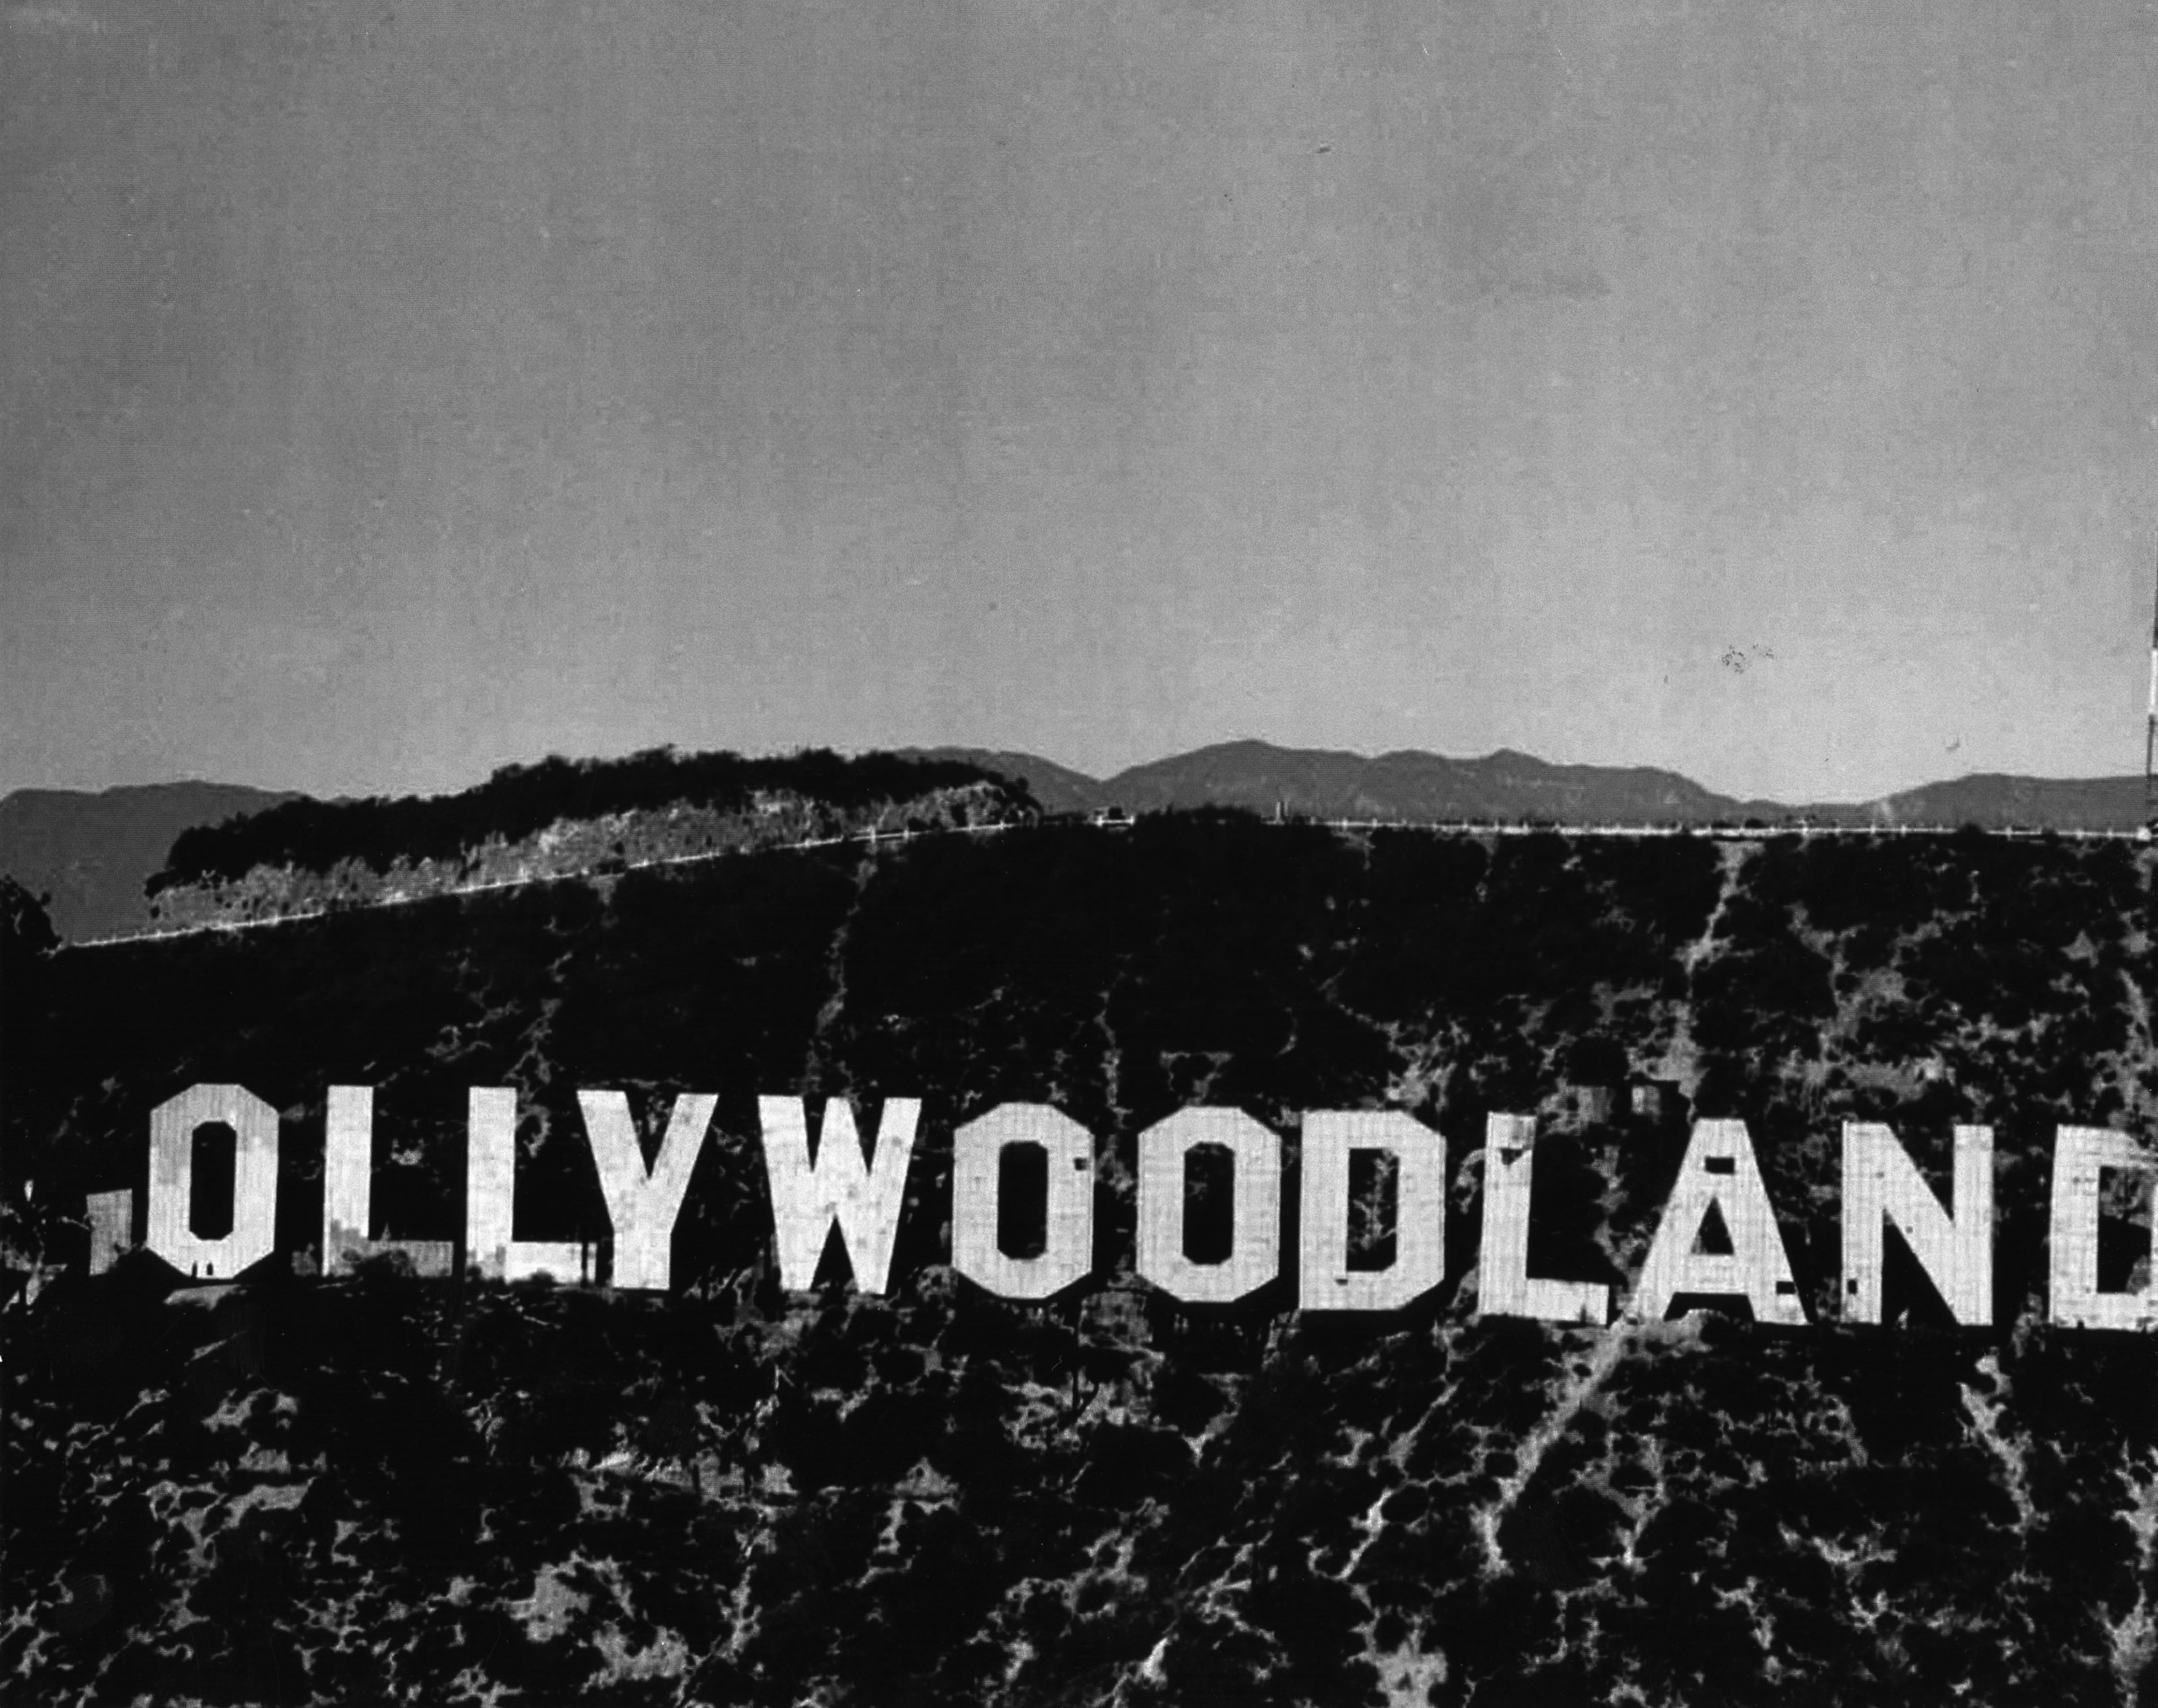 The  ollywoodland  sign, 1949.